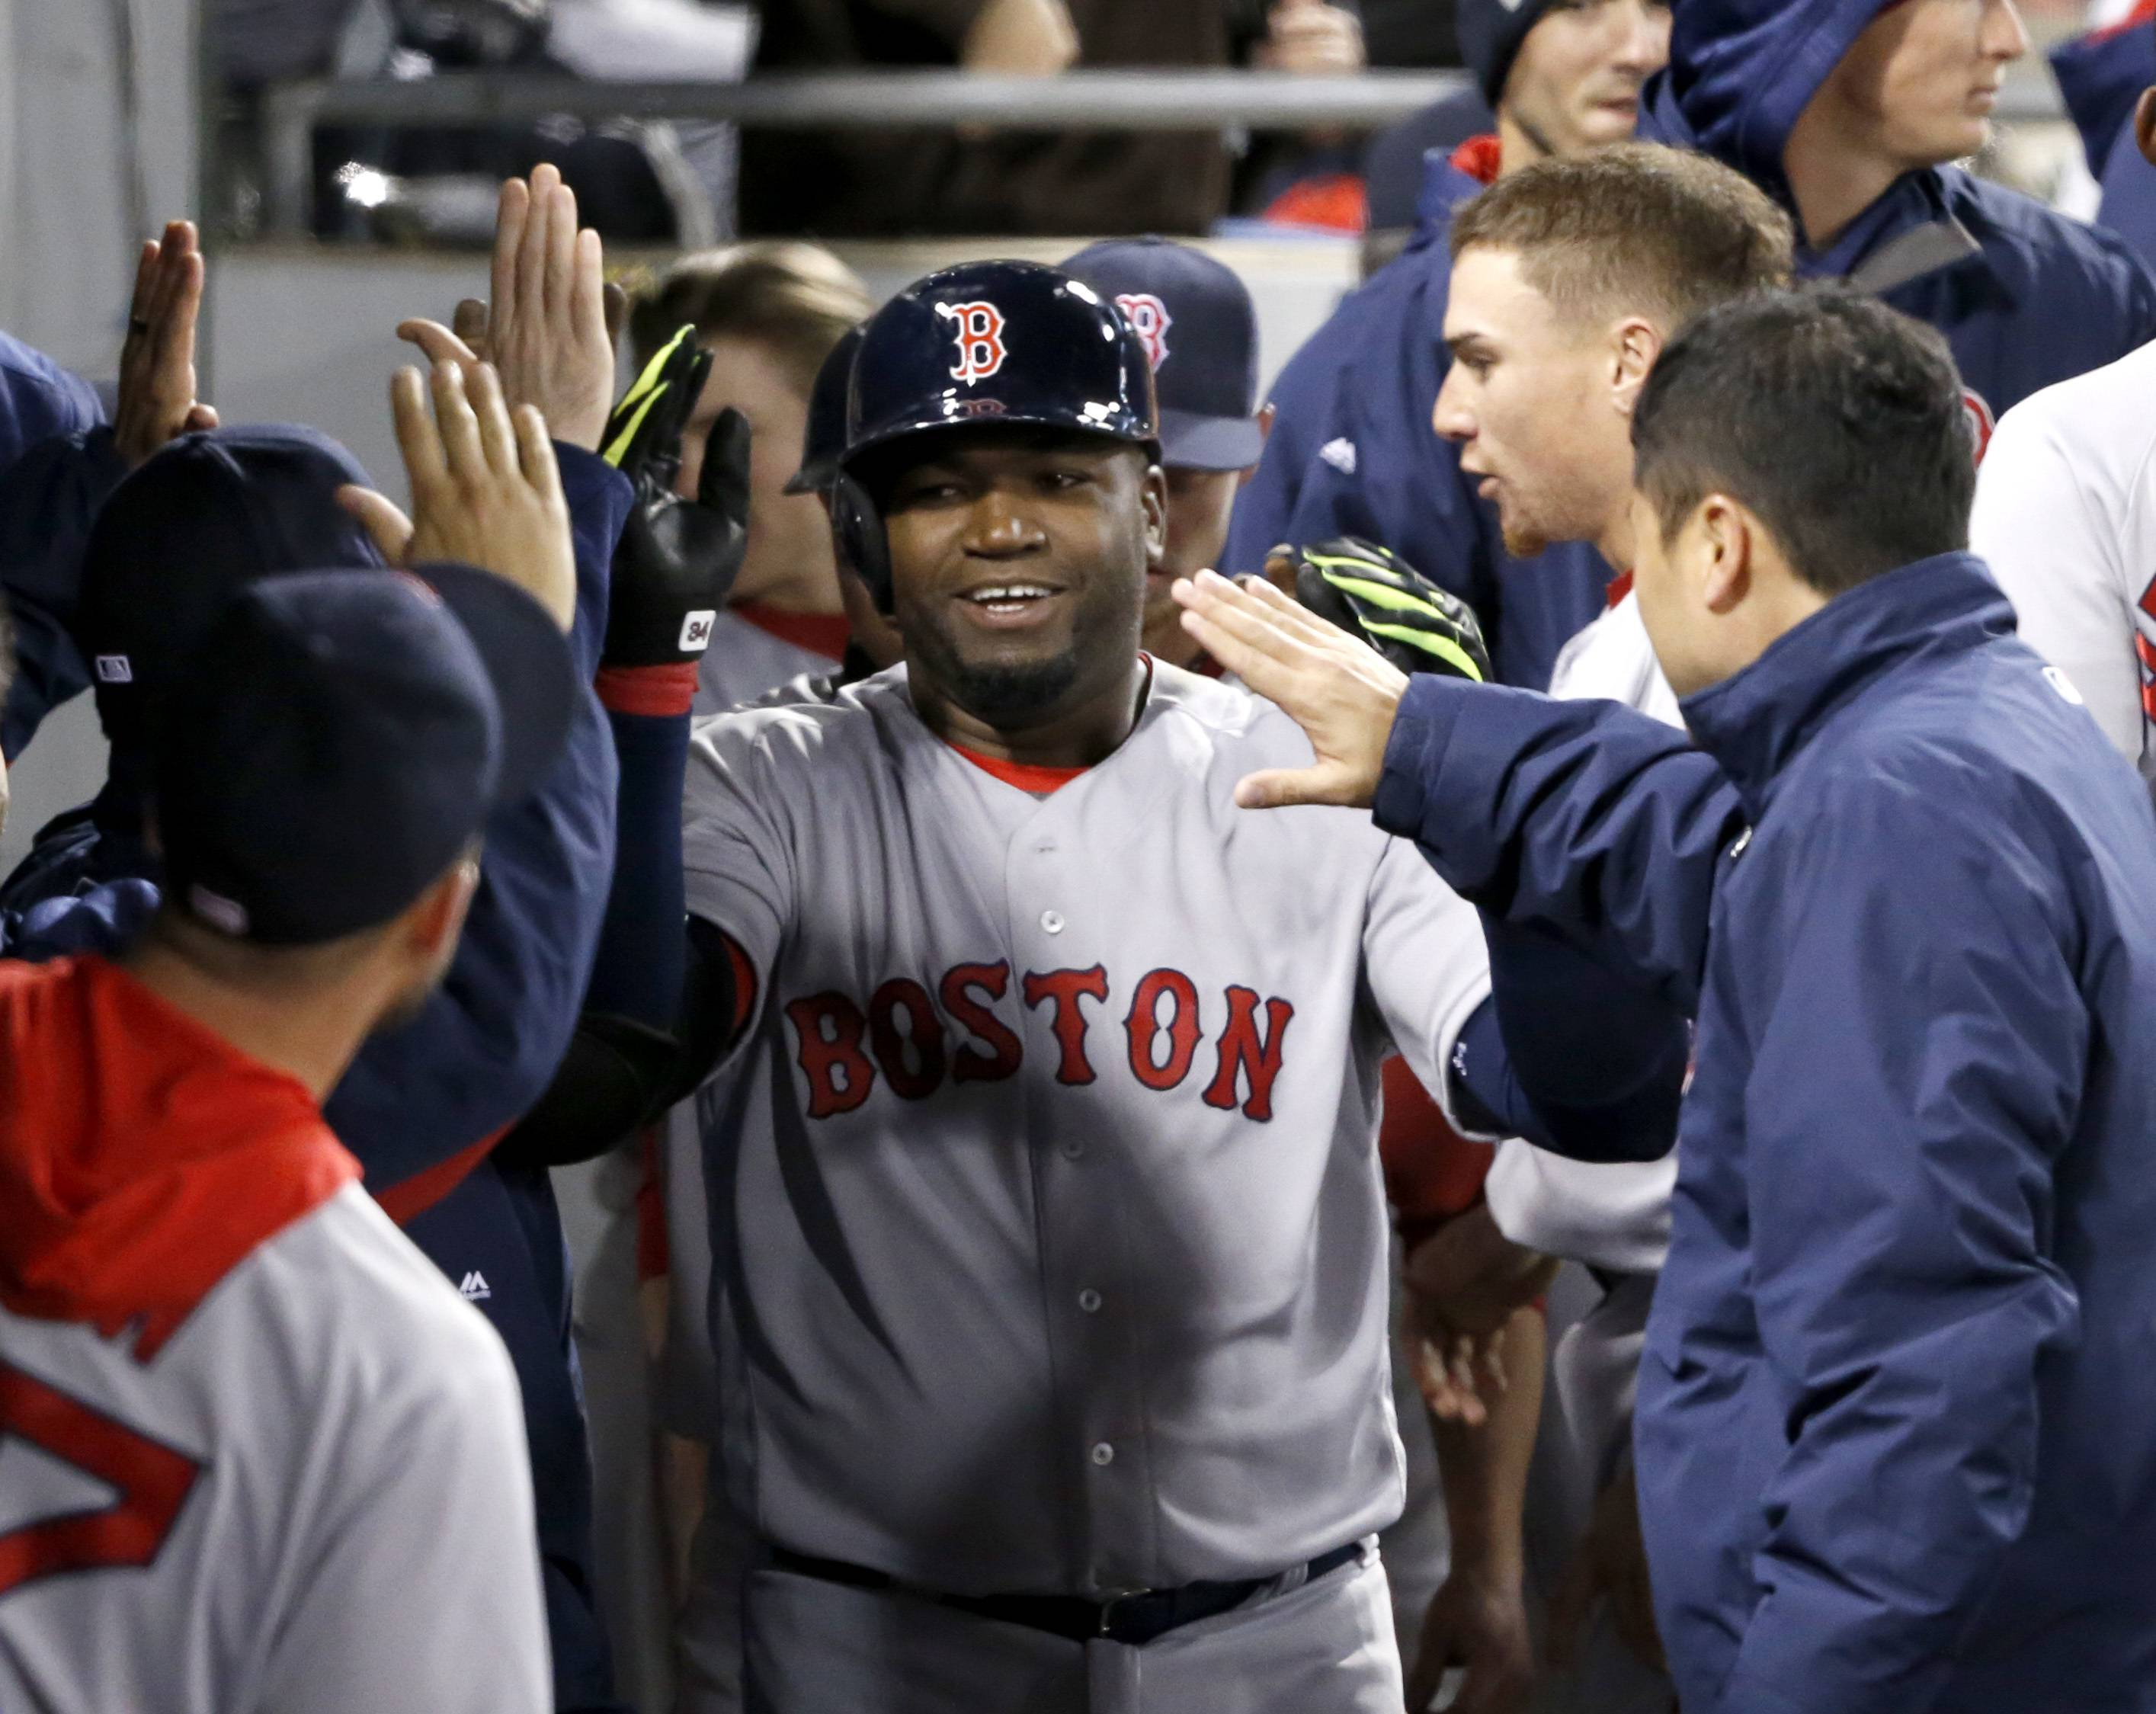 Boston Red Sox's David Ortiz celebrates in the dugout his 2-run home run off Chicago White Sox starting pitcher Carlos Rodon, also scoring Xander Bogaerts, during the fifth inning of a baseball game Wednesday, May 4, 2016, in Chicago. (AP Photo/Charles Rex Arbogast)